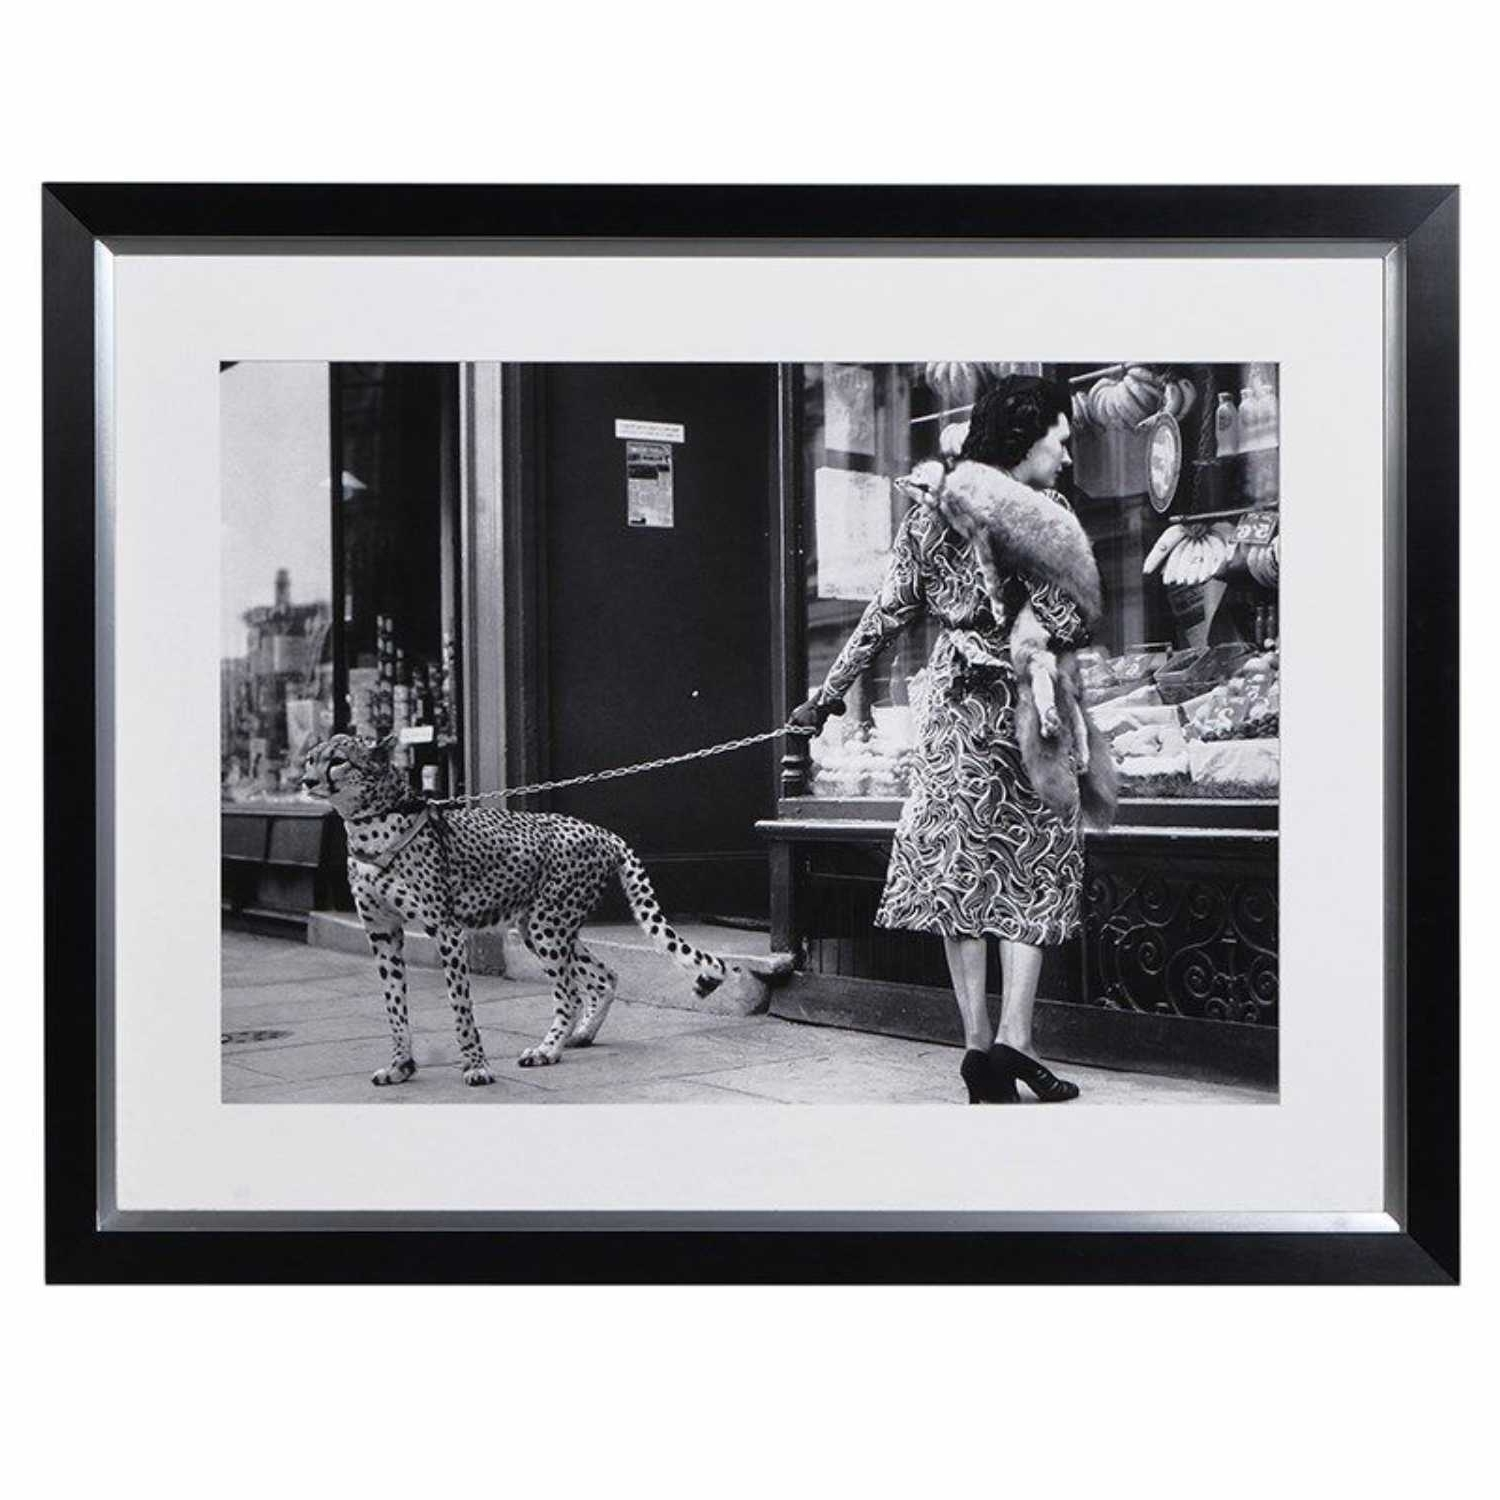 Black And White Wall Art Throughout Recent Lady With Leopard On A Leash Photo Large Modern Black White Wall Art (View 7 of 15)